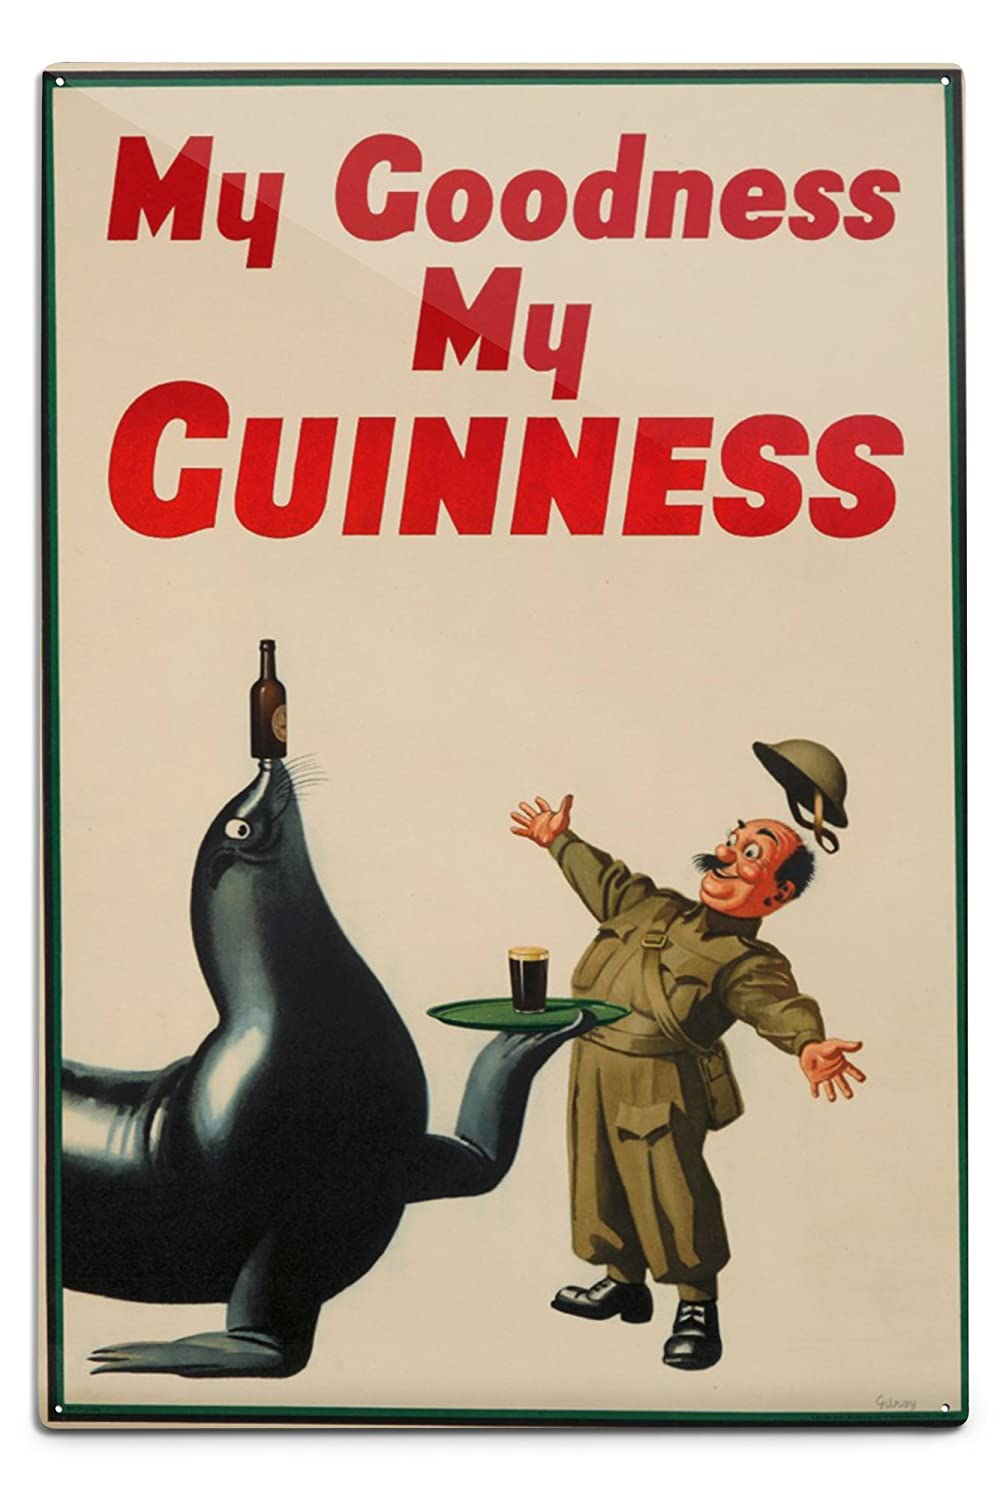 My Goodness My Guinnessヴィンテージポスター(アーティスト: Gilroy ) UK C。1936 12 x 18 Metal Sign LANT-73008-12x18M B06Y1GJZTS  12 x 18 Metal Sign